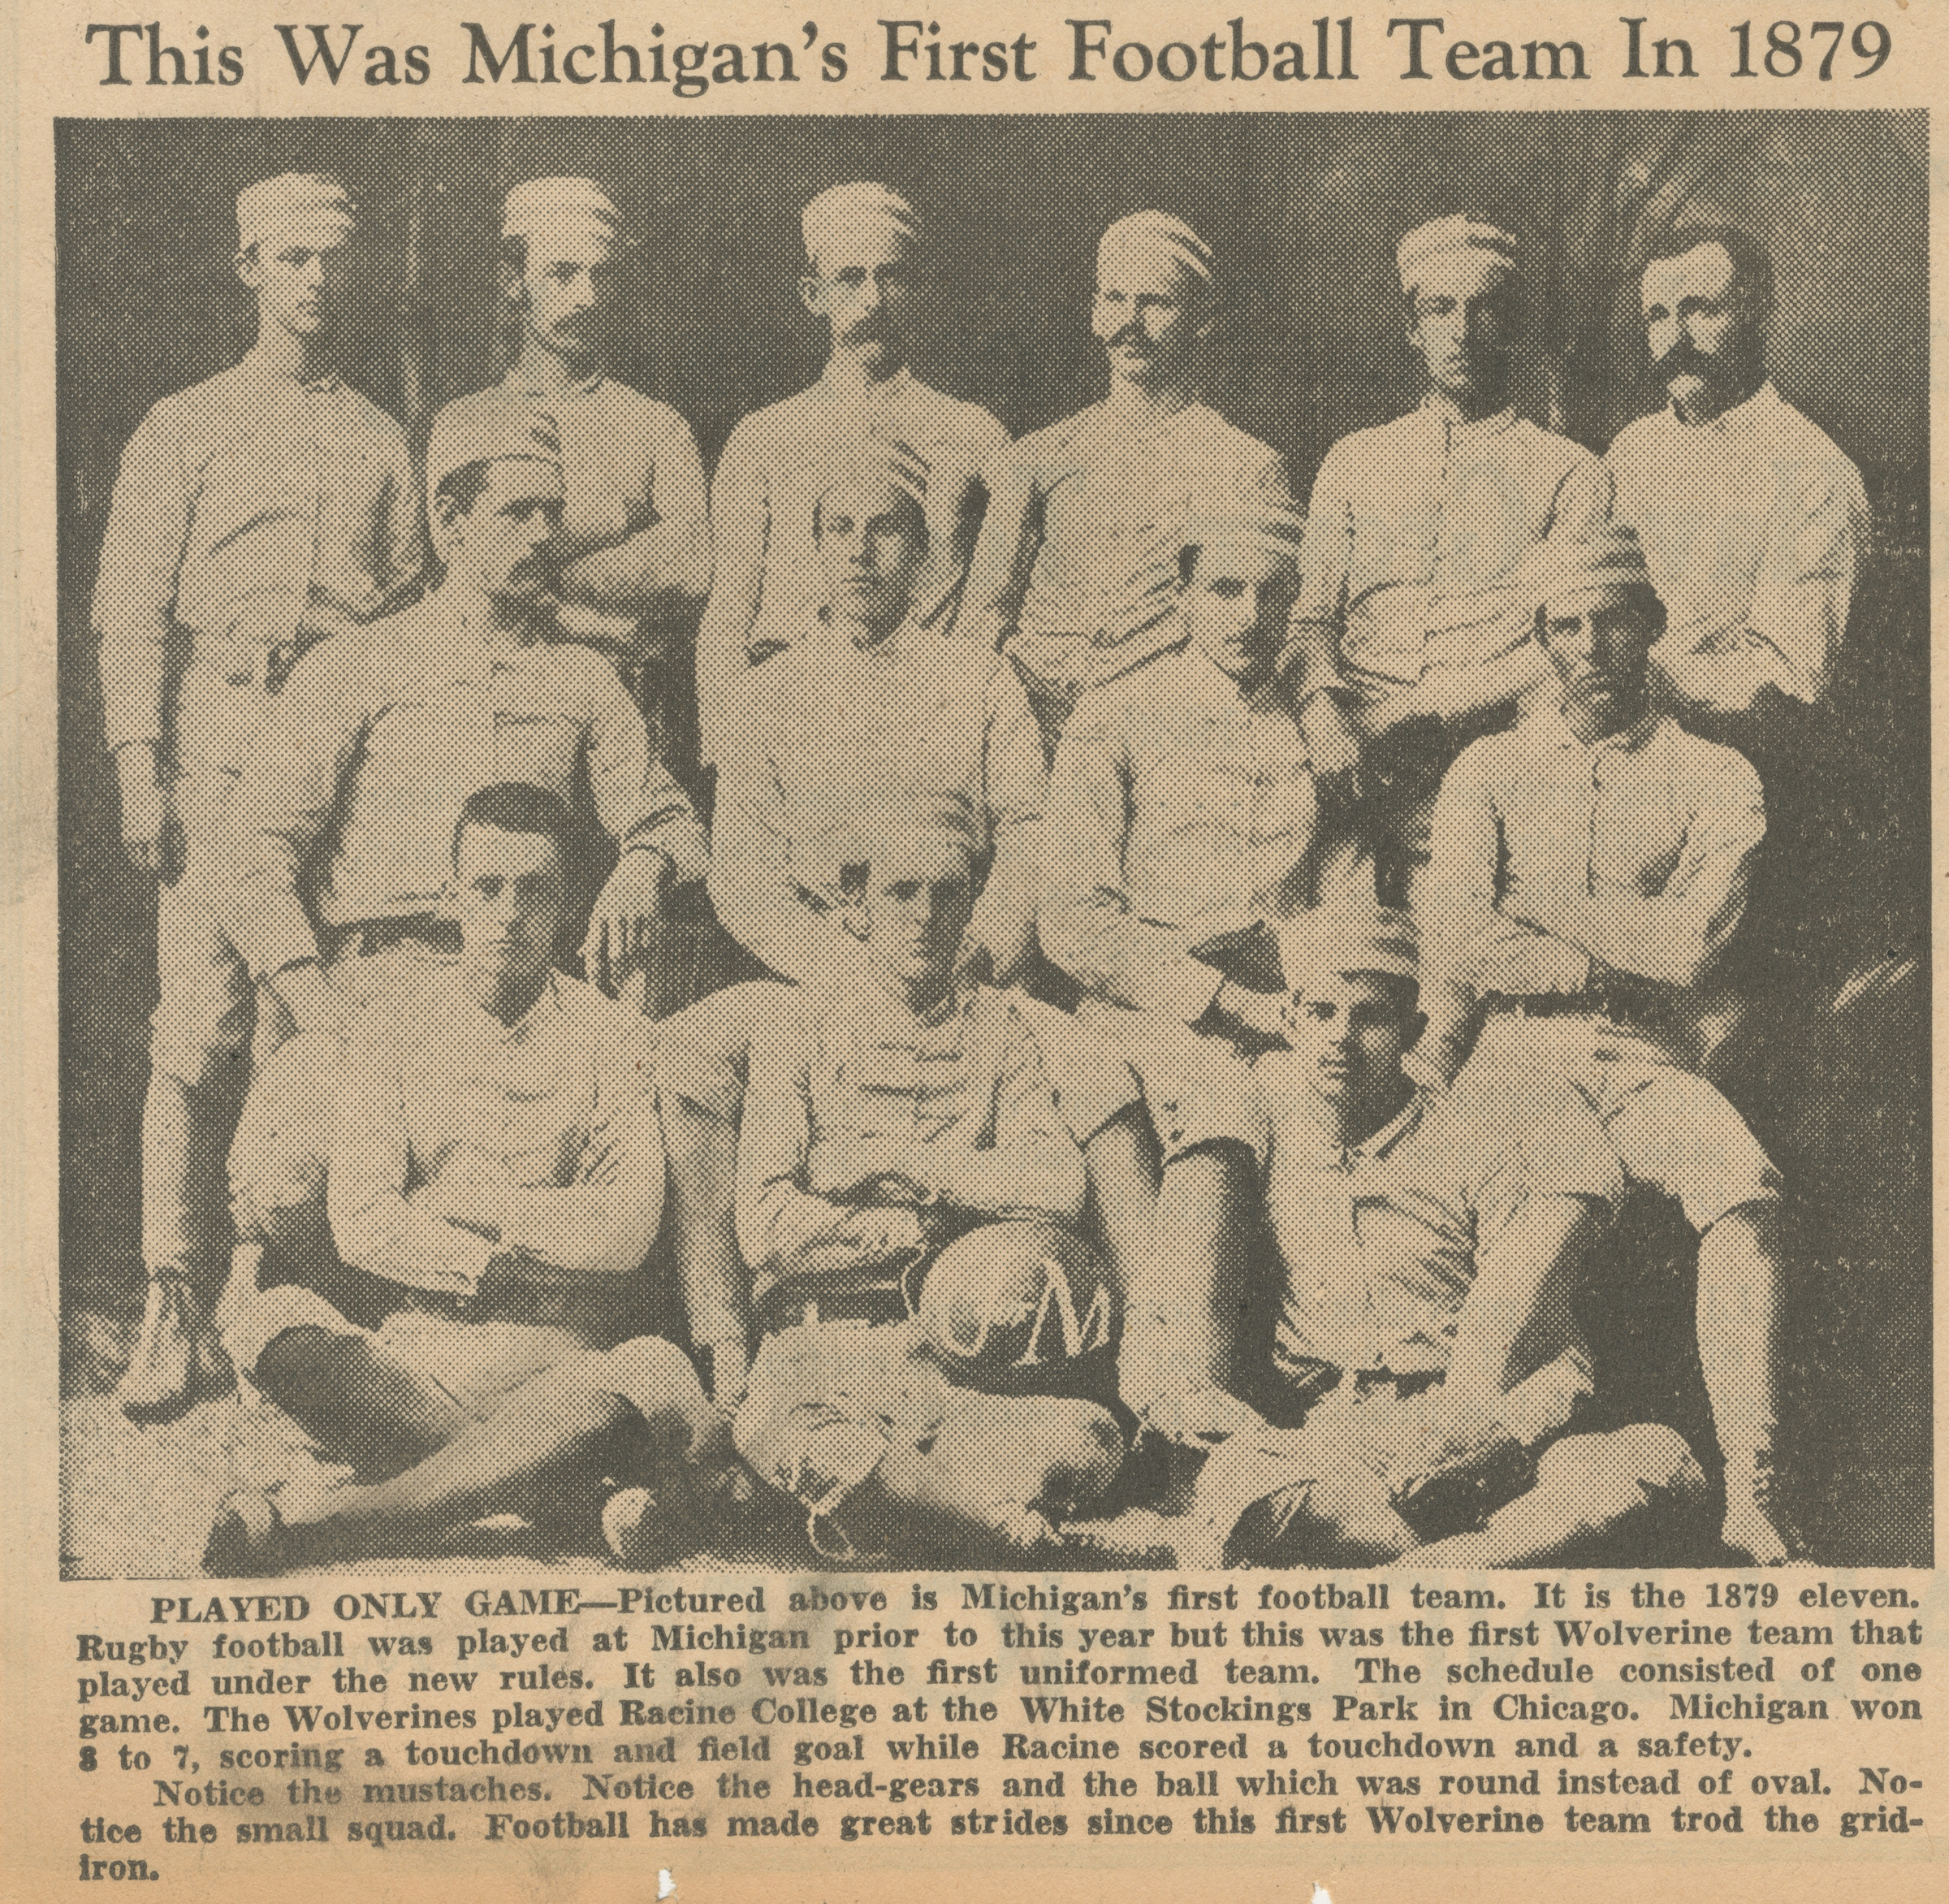 This Was Michigan's First Football Team In 1879 image